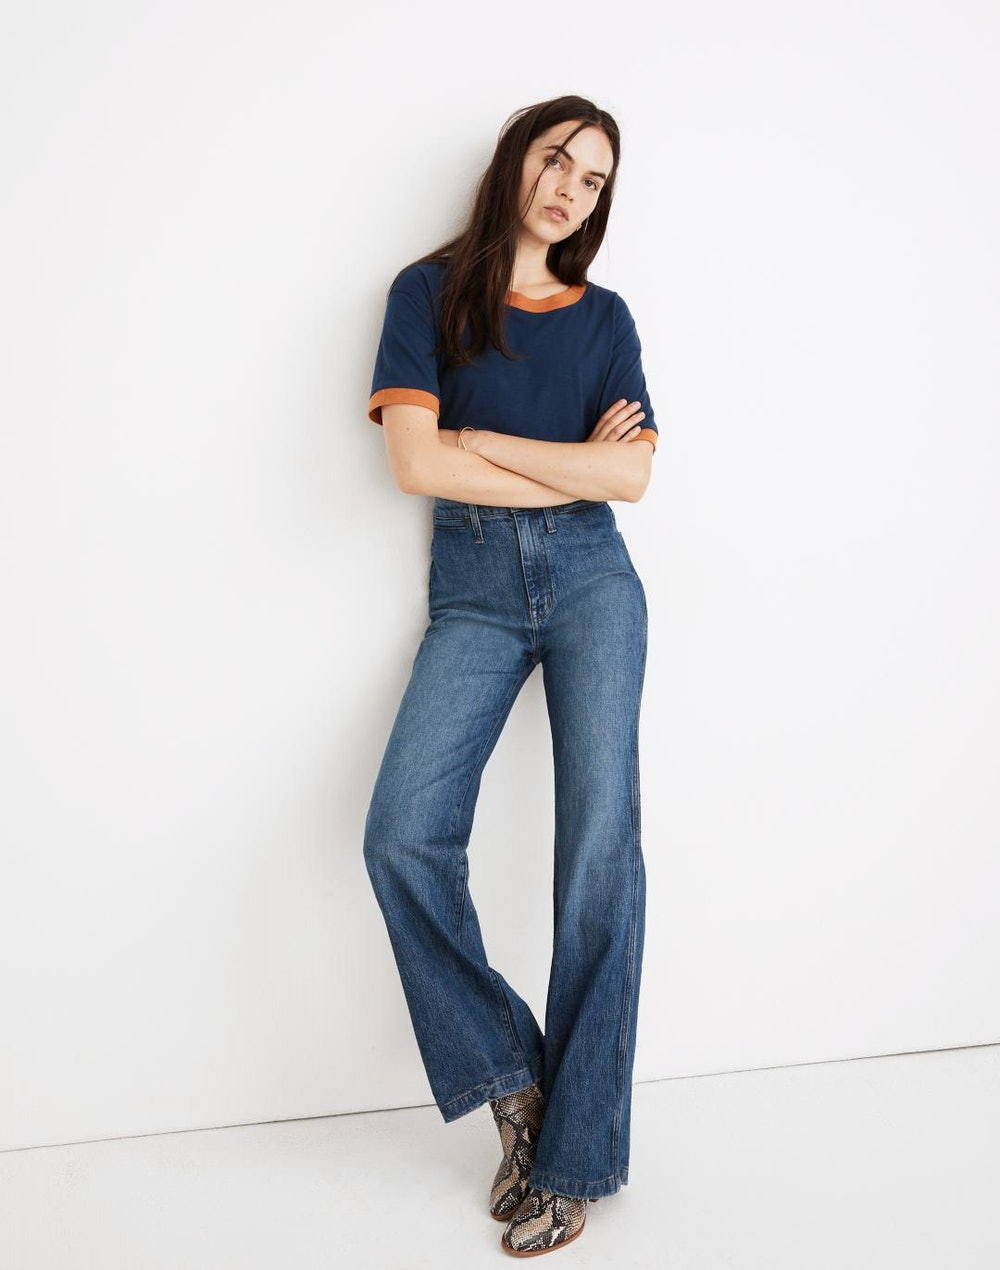 High-Rise Flare Jeans in Mersey Wash: Welt Pocket Edition